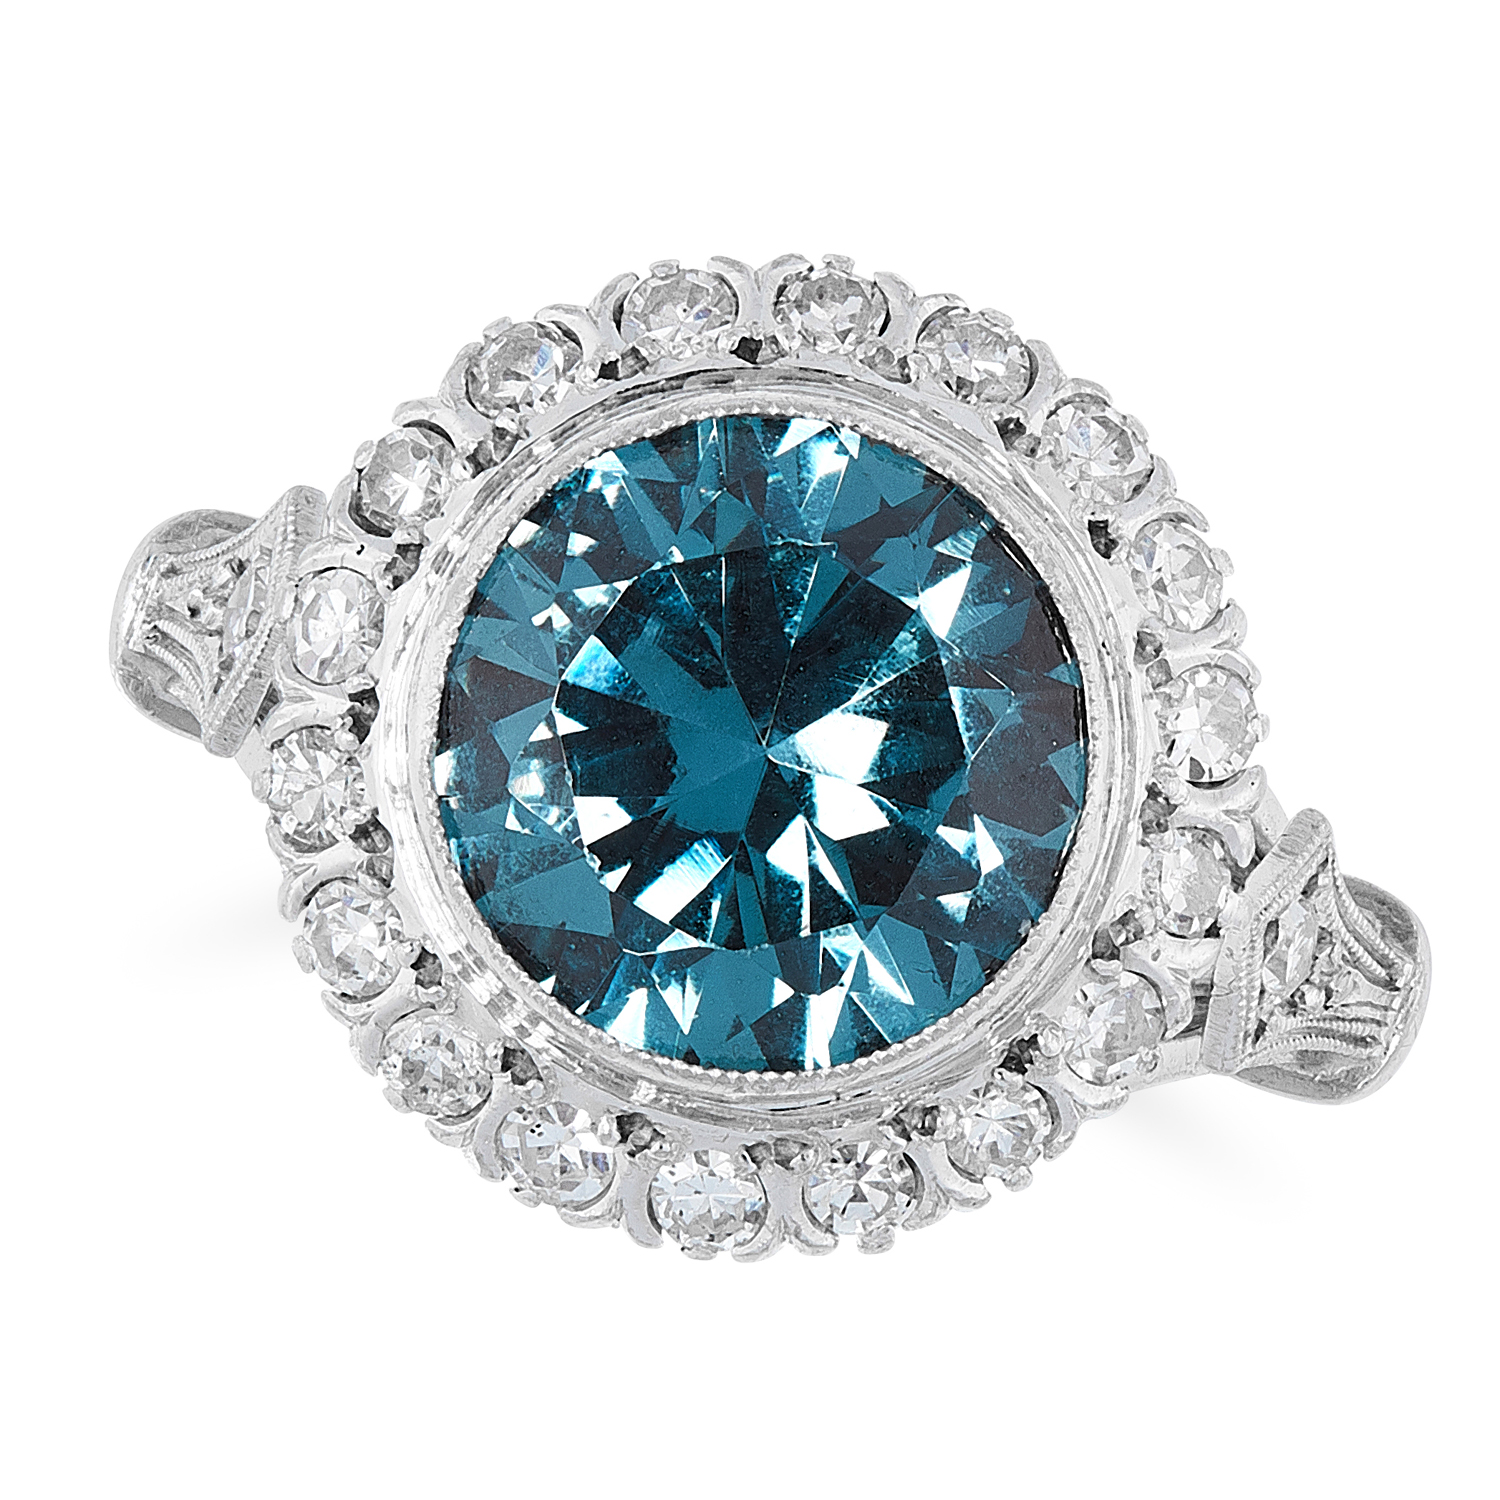 AN ANTIQUE ZIRCON AND DIAMOND RING, CIRCA 1930 in platinum, set with a central round cut blue zircon